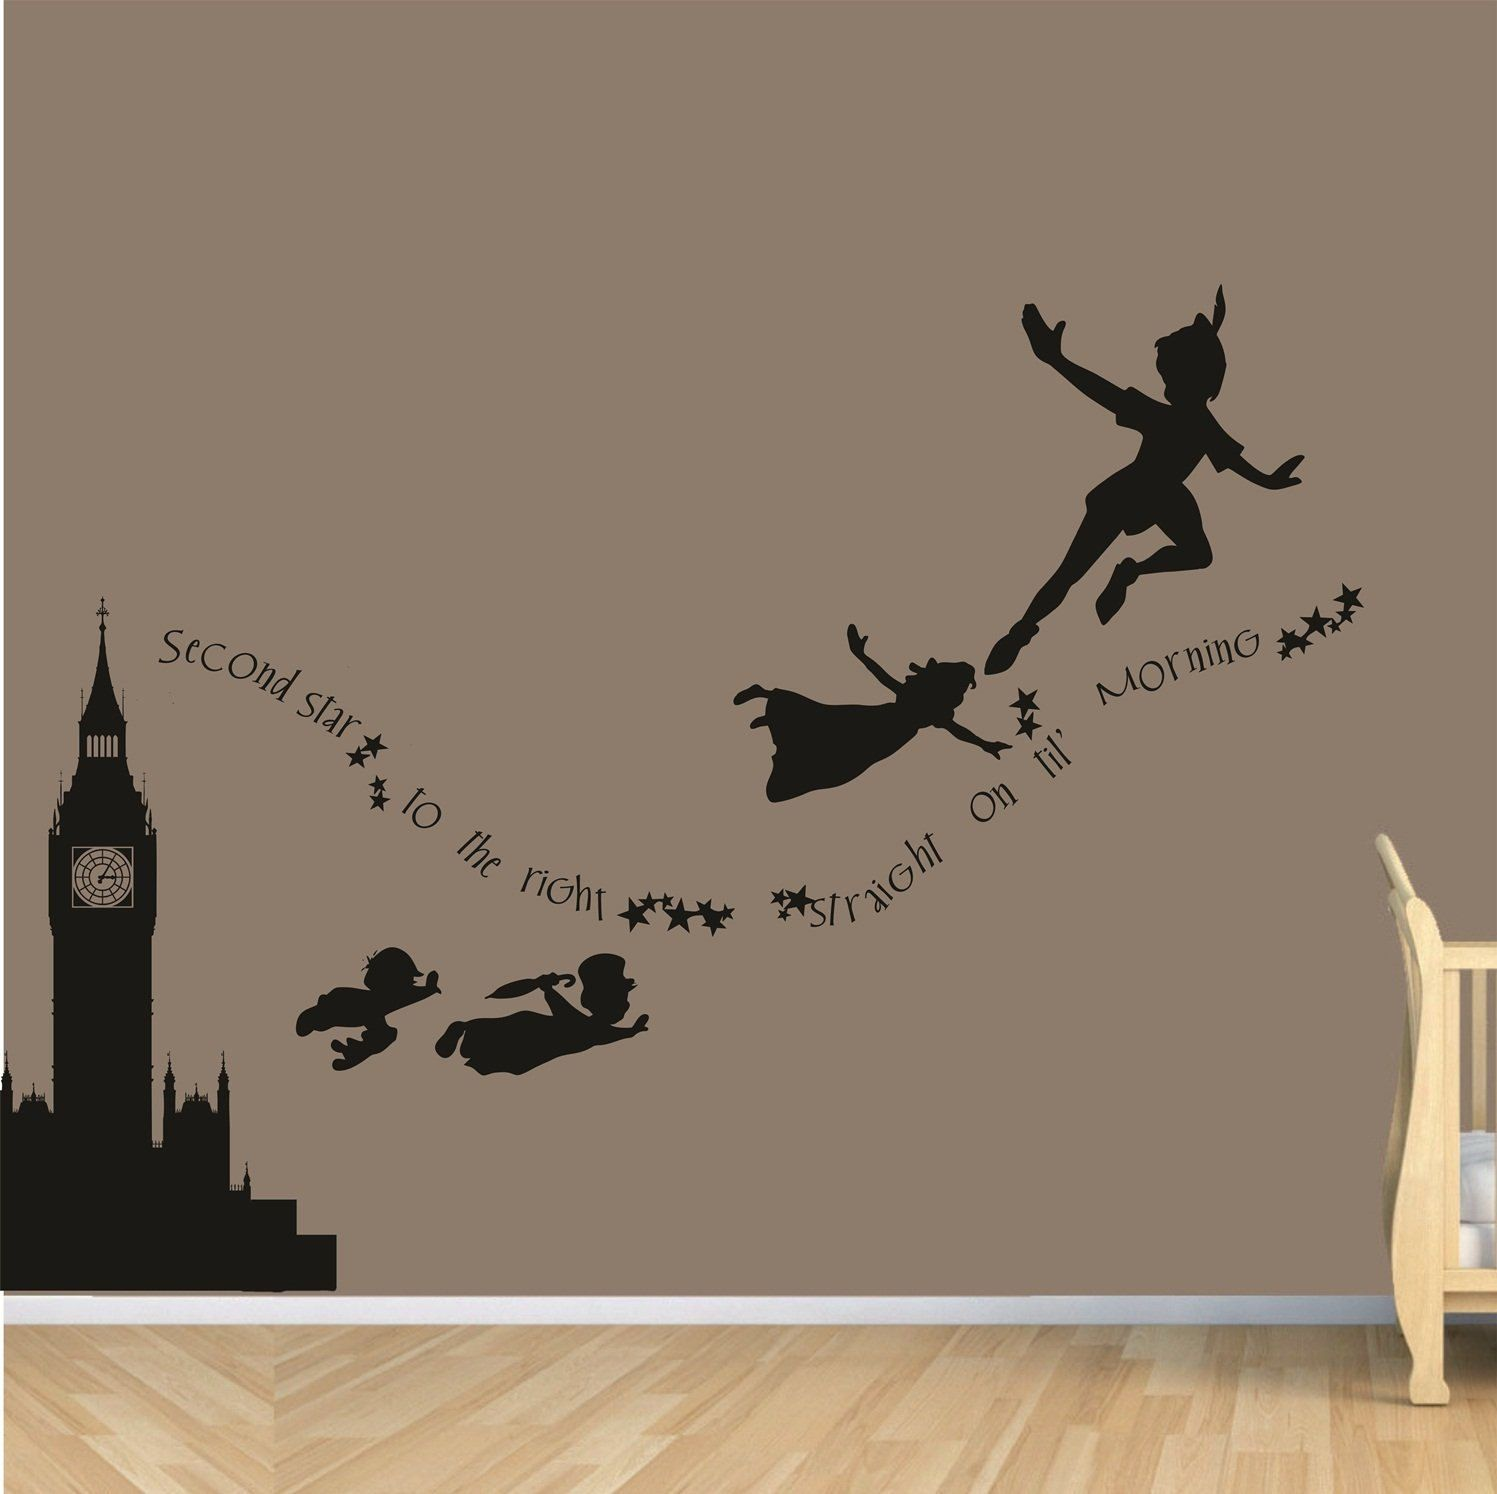 Clock tower peter pan never never land flying by parklanecouture clock tower peter pan never never land flying childrens nursery vinyl decor wall mural decal silhouette disney inspired amipublicfo Gallery